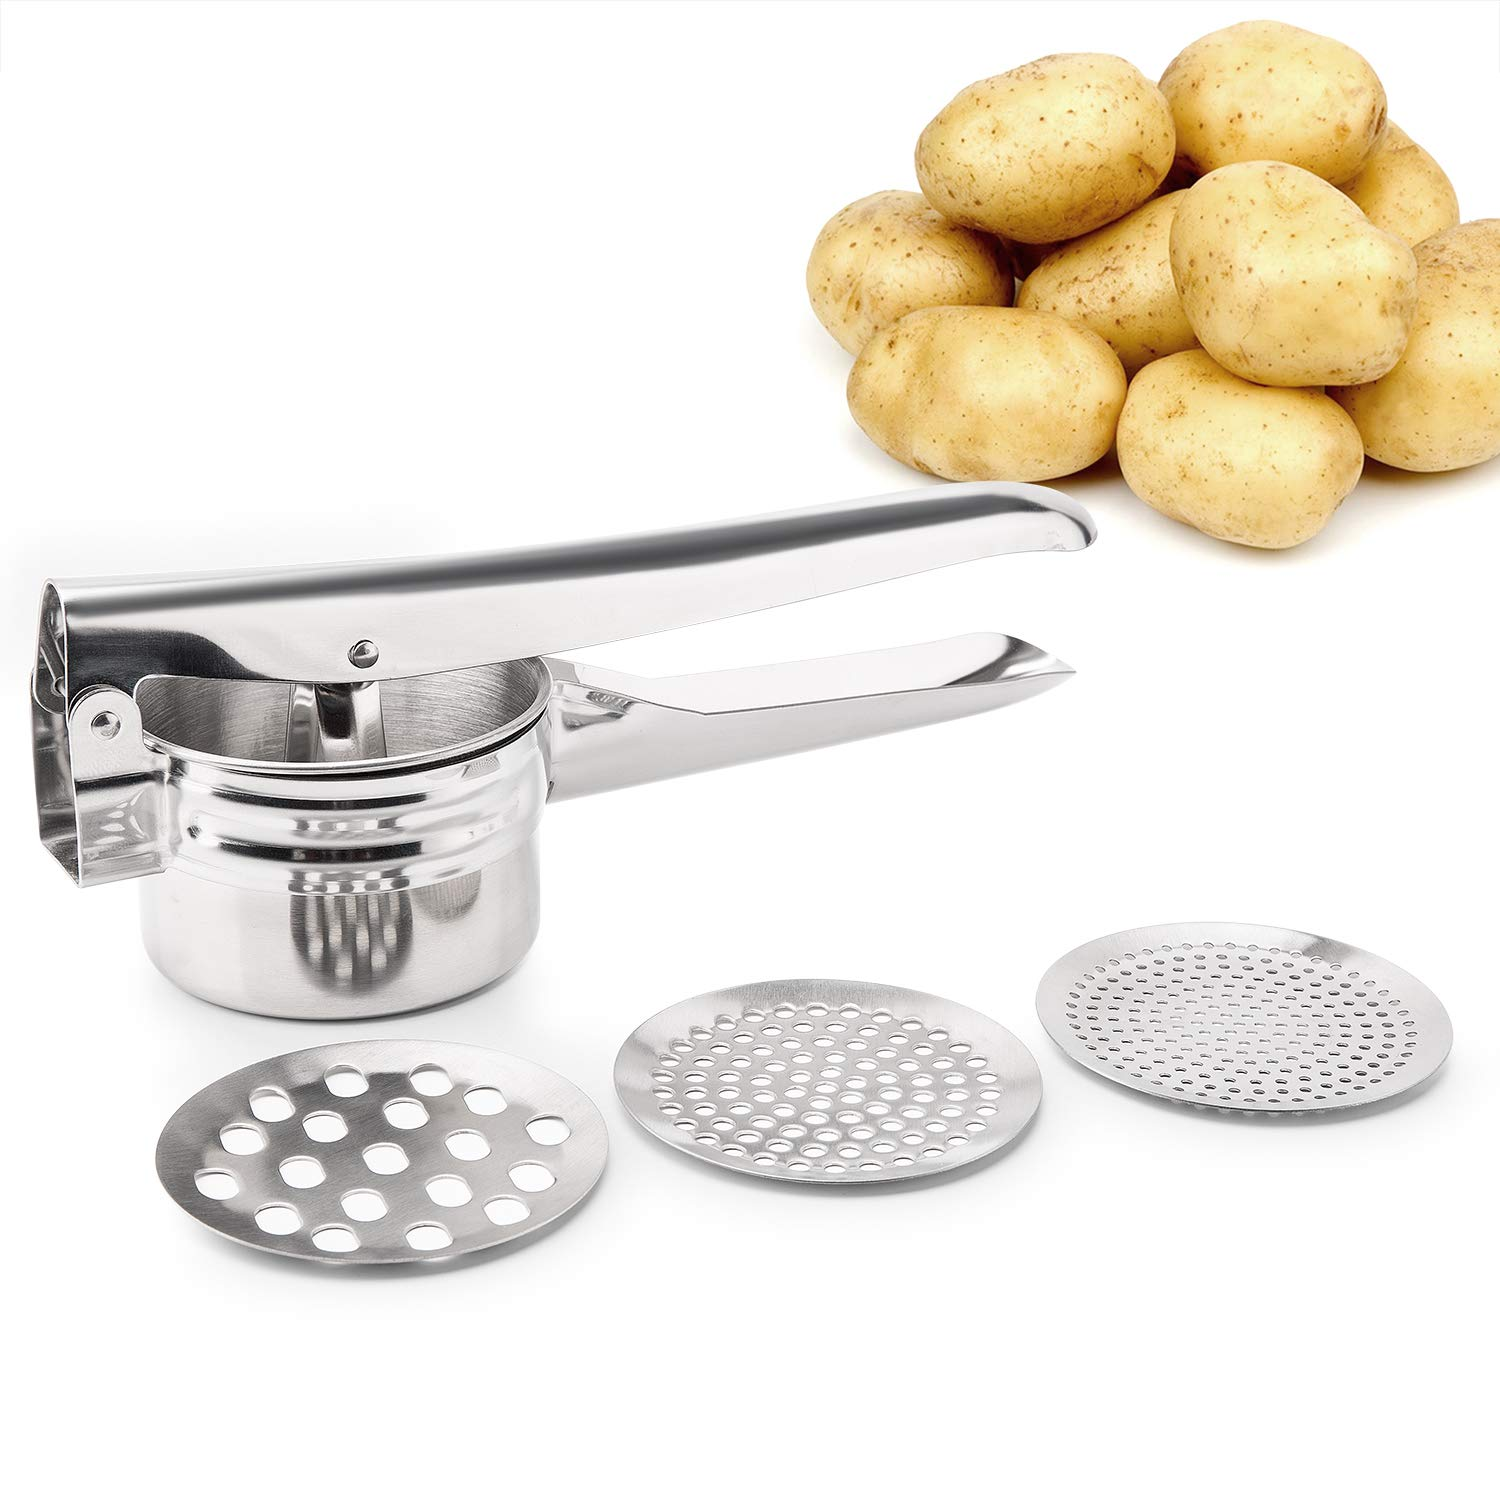 FUKTSYSM Potato Masher